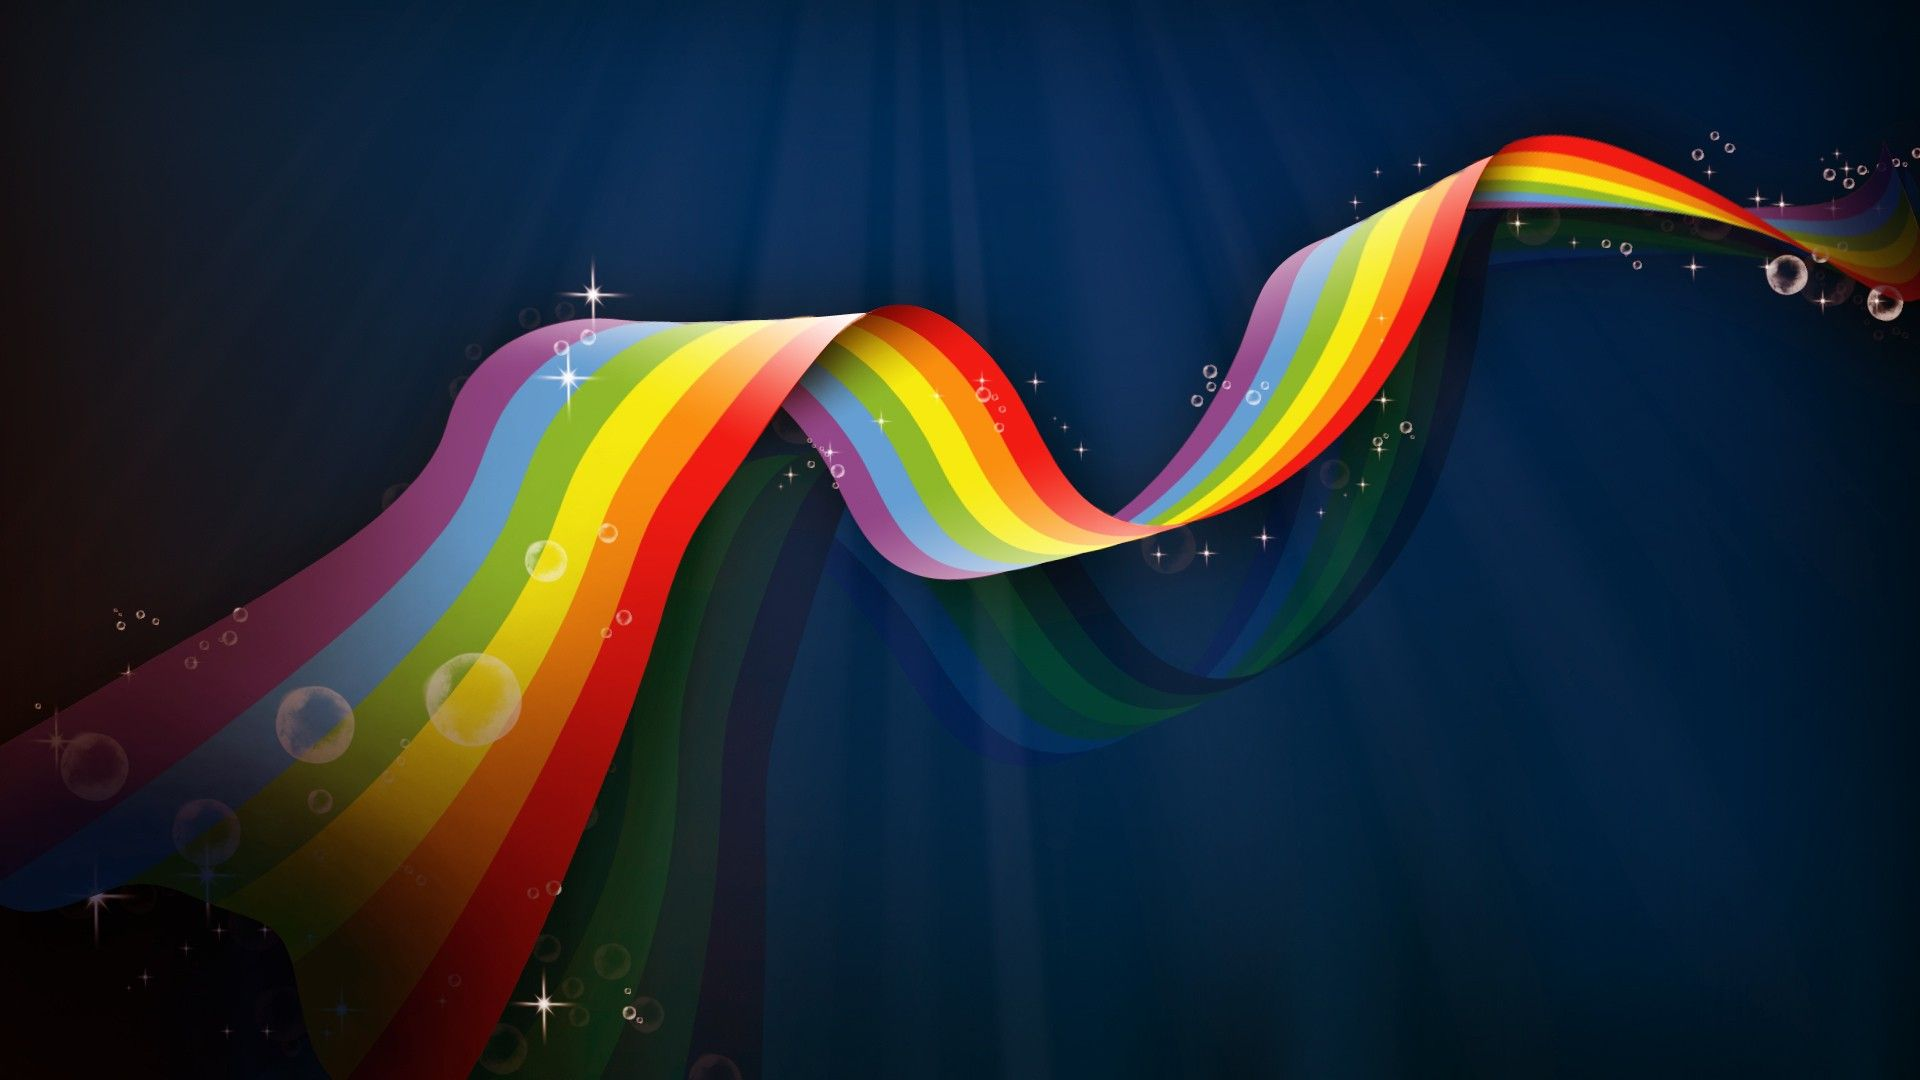 Hd wallpaper rainbow - Find This Pin And More On Hd Wallpapers